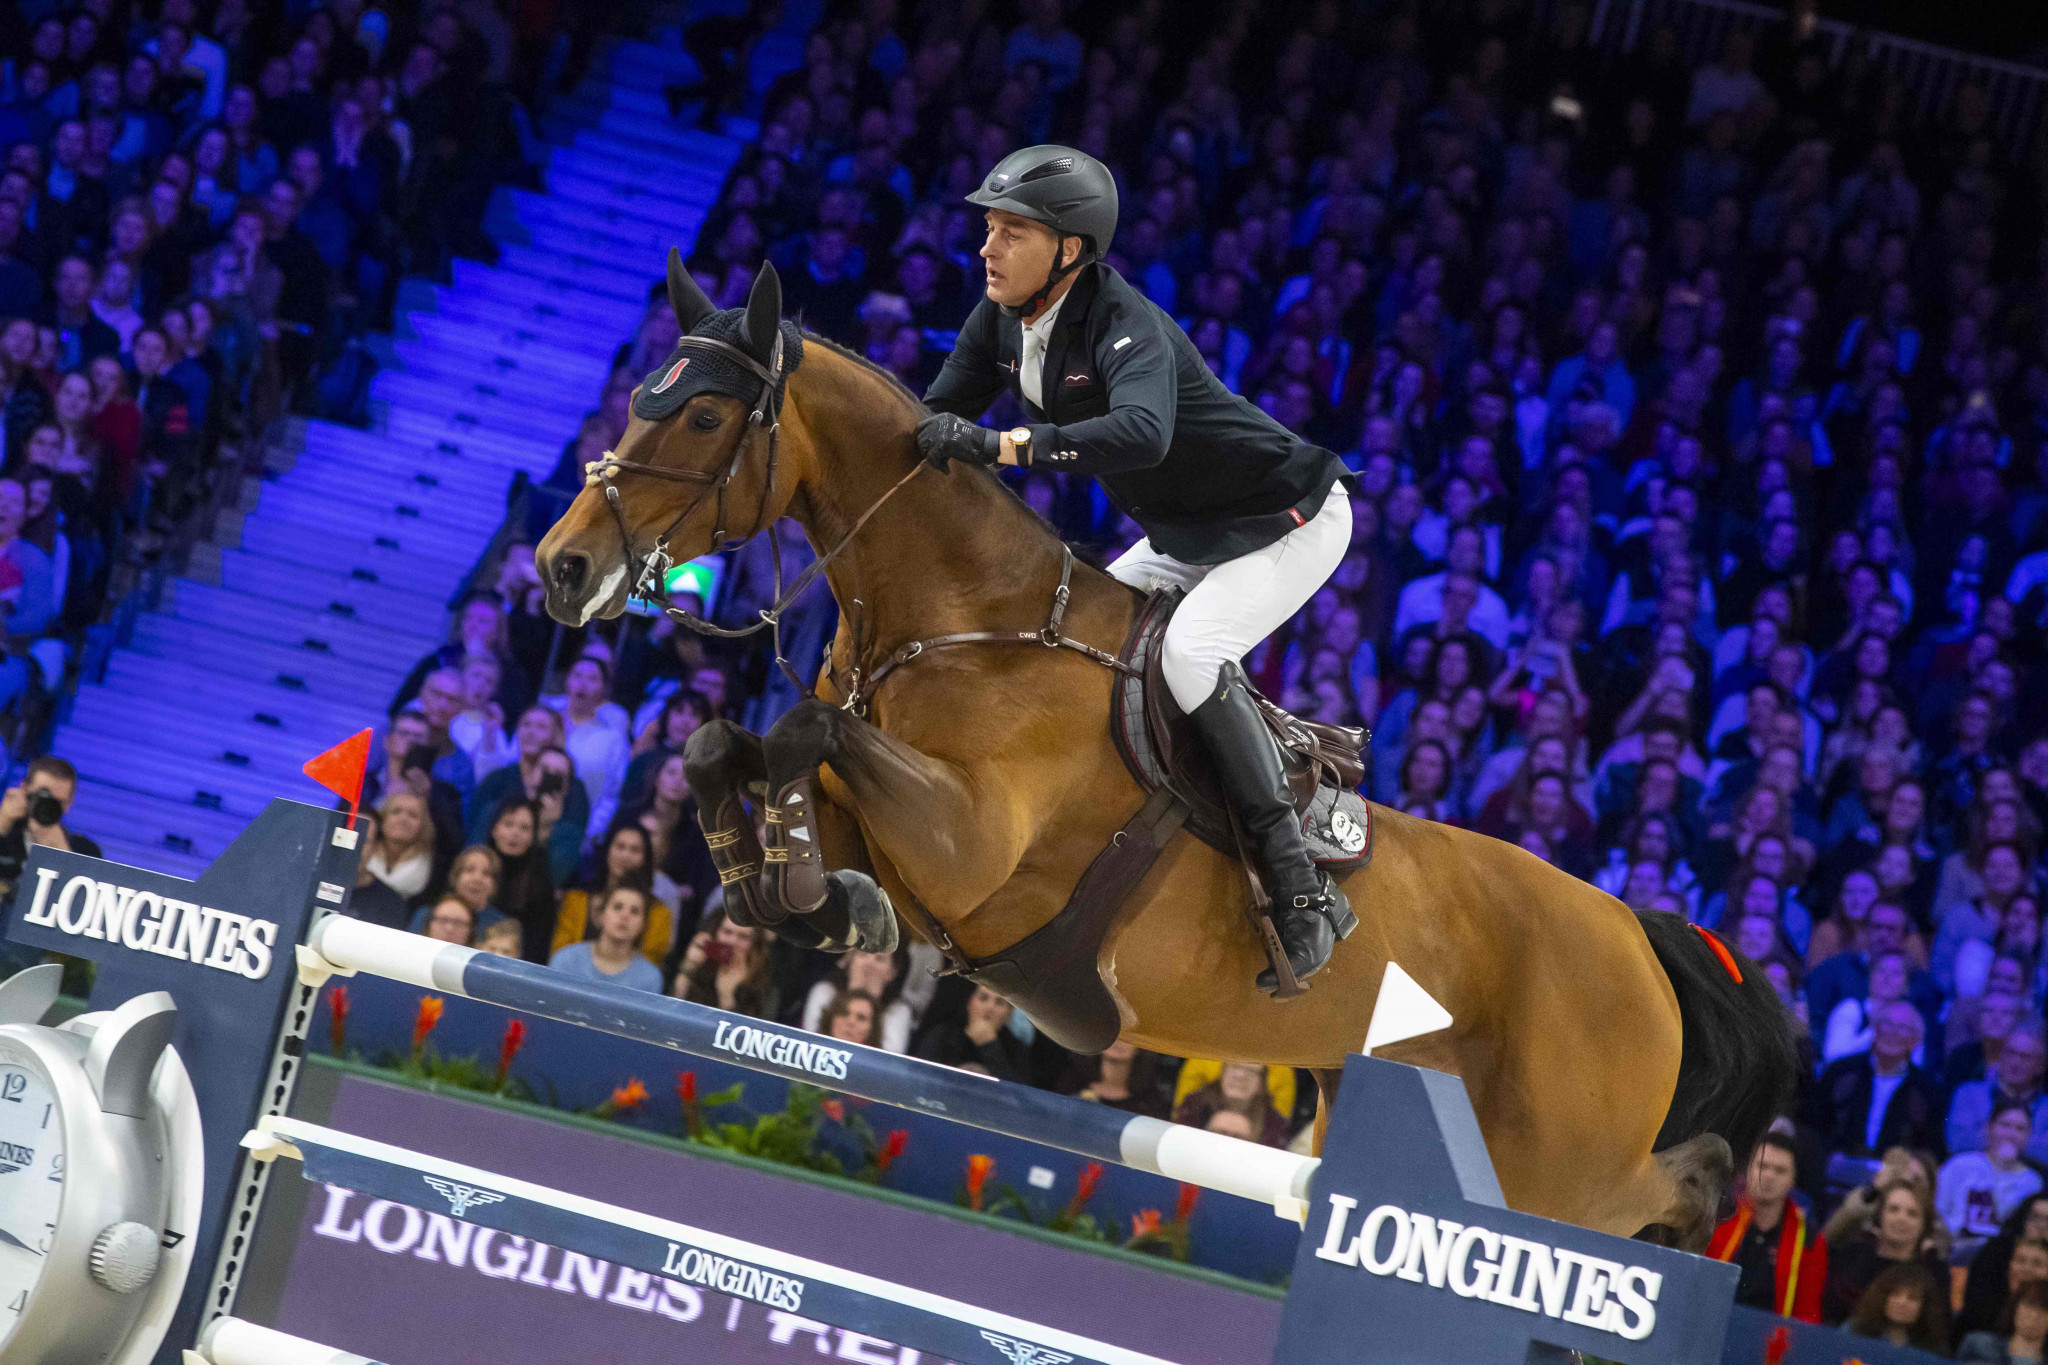 Houtzager clinches home Dutch win at Jumping World Cup in Amsterdam